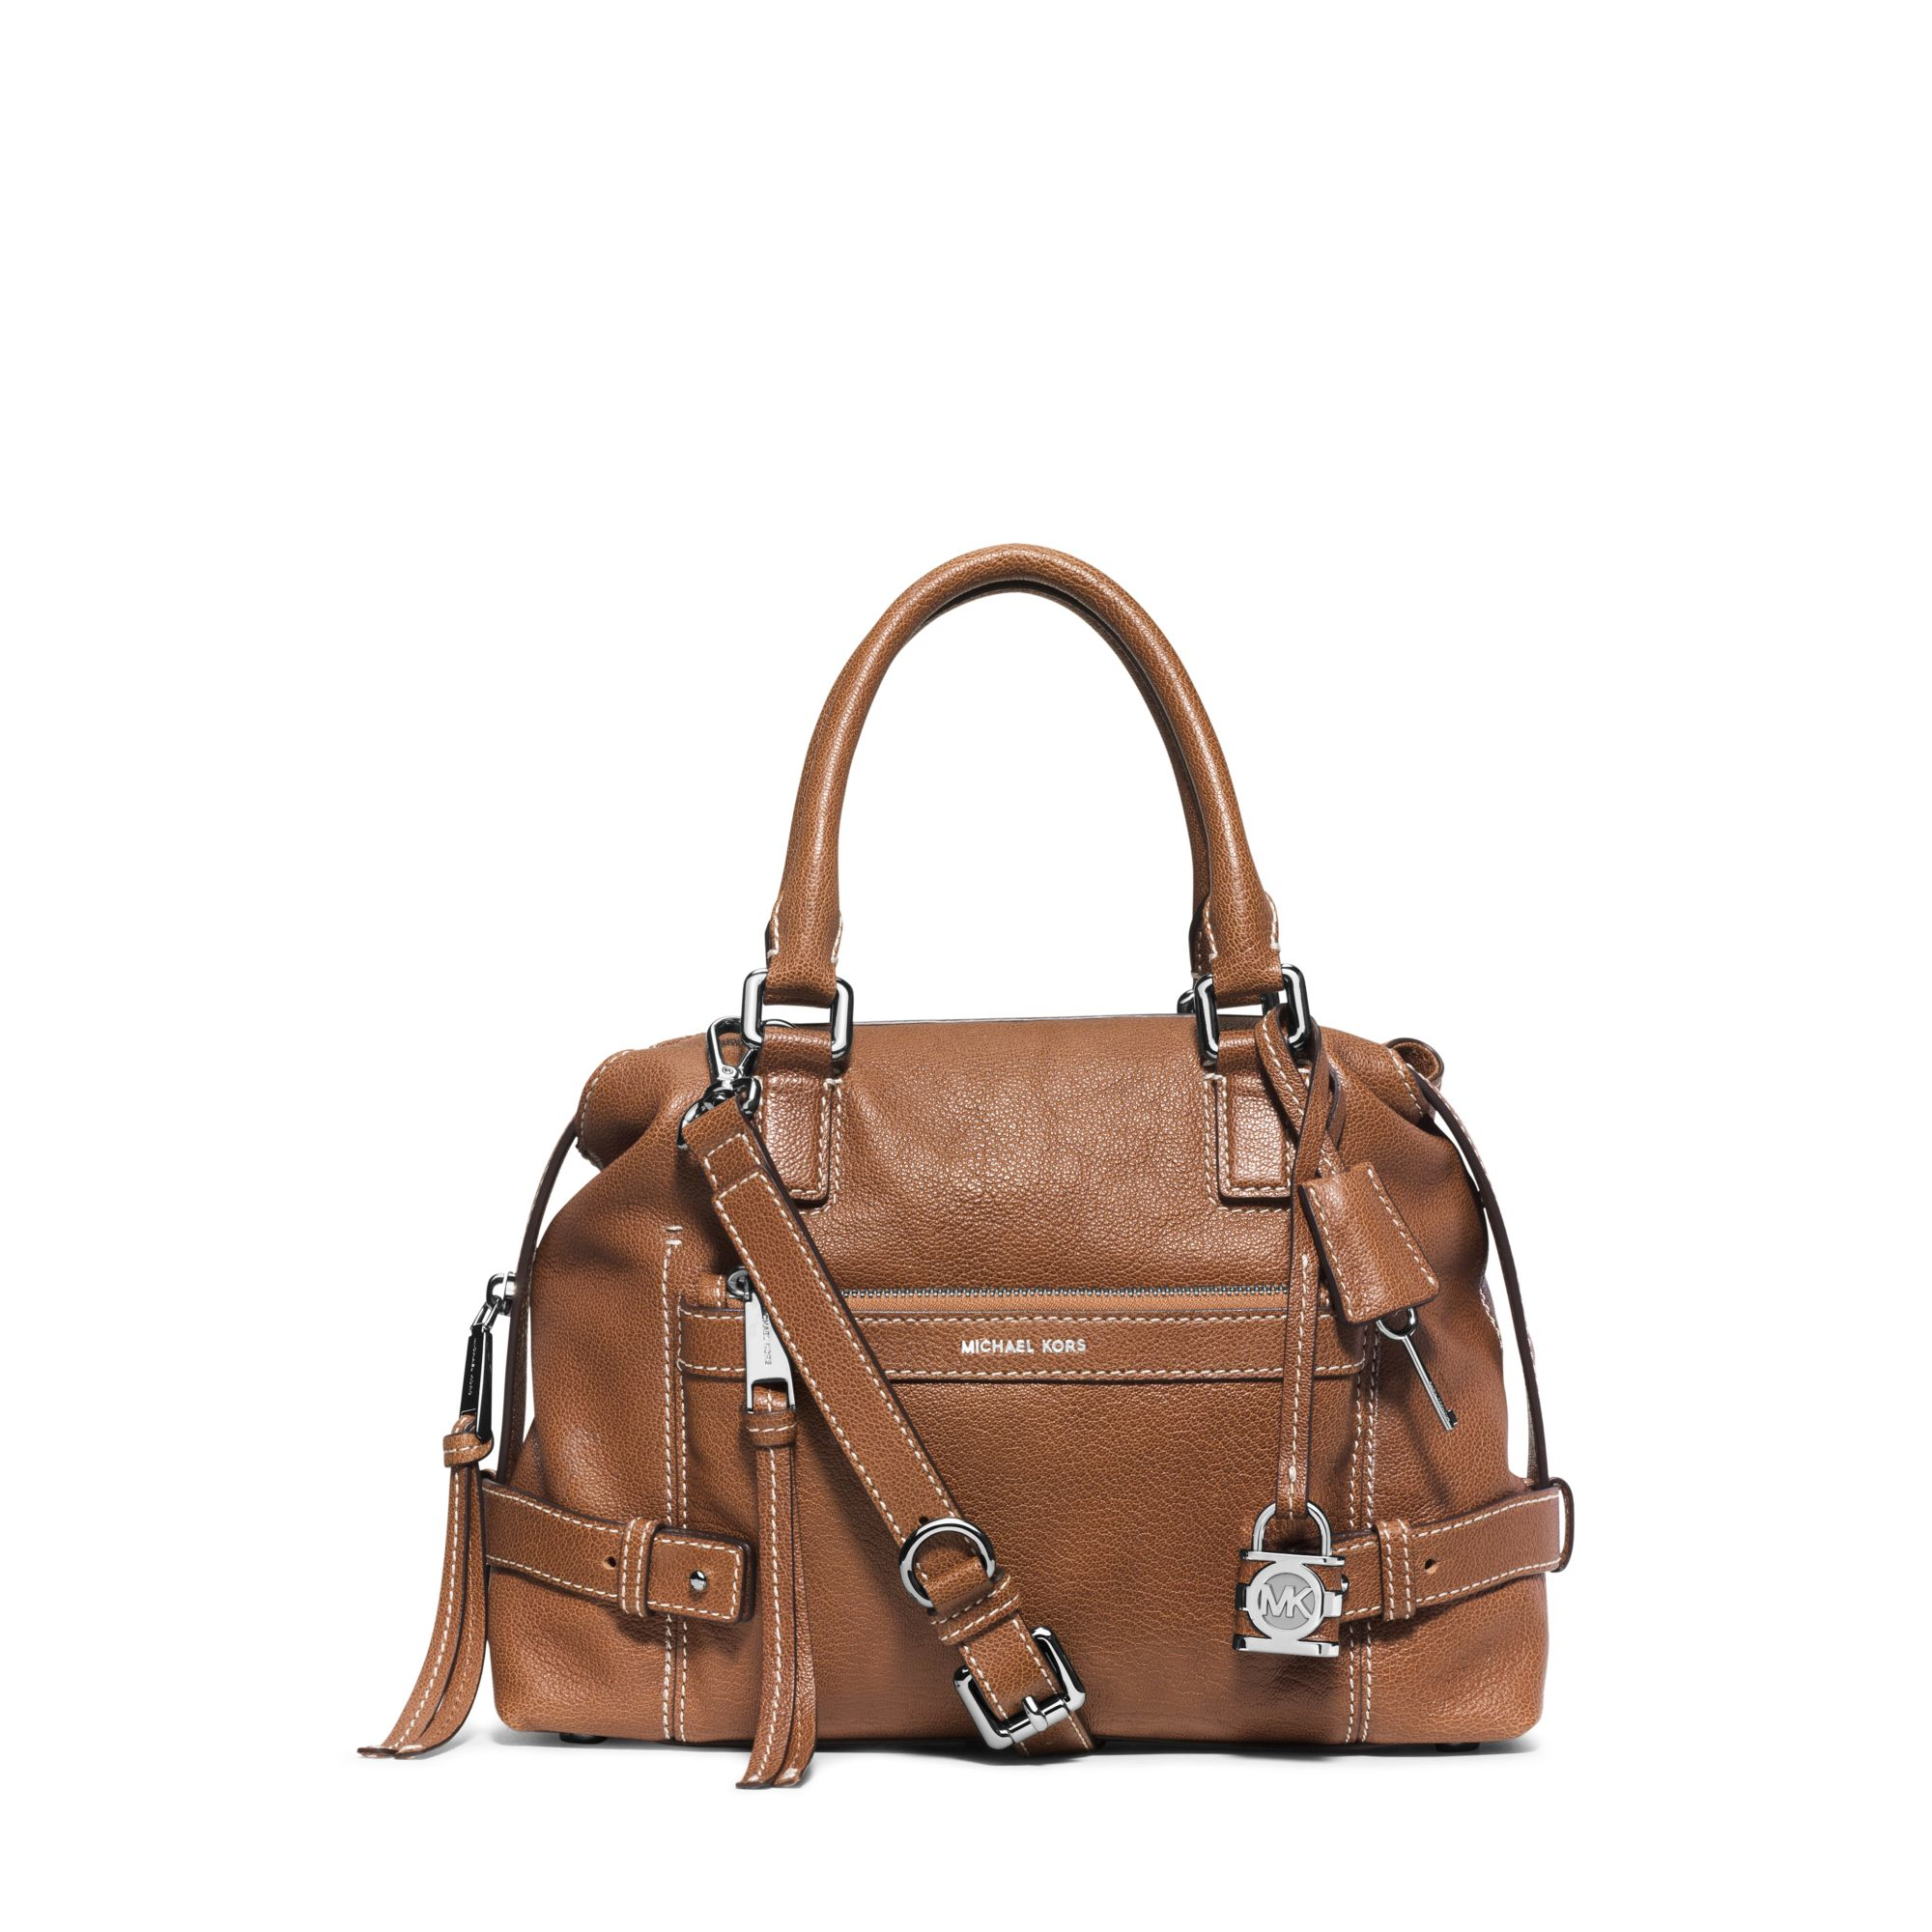 michael kors abby leather satchel in brown lyst. Black Bedroom Furniture Sets. Home Design Ideas